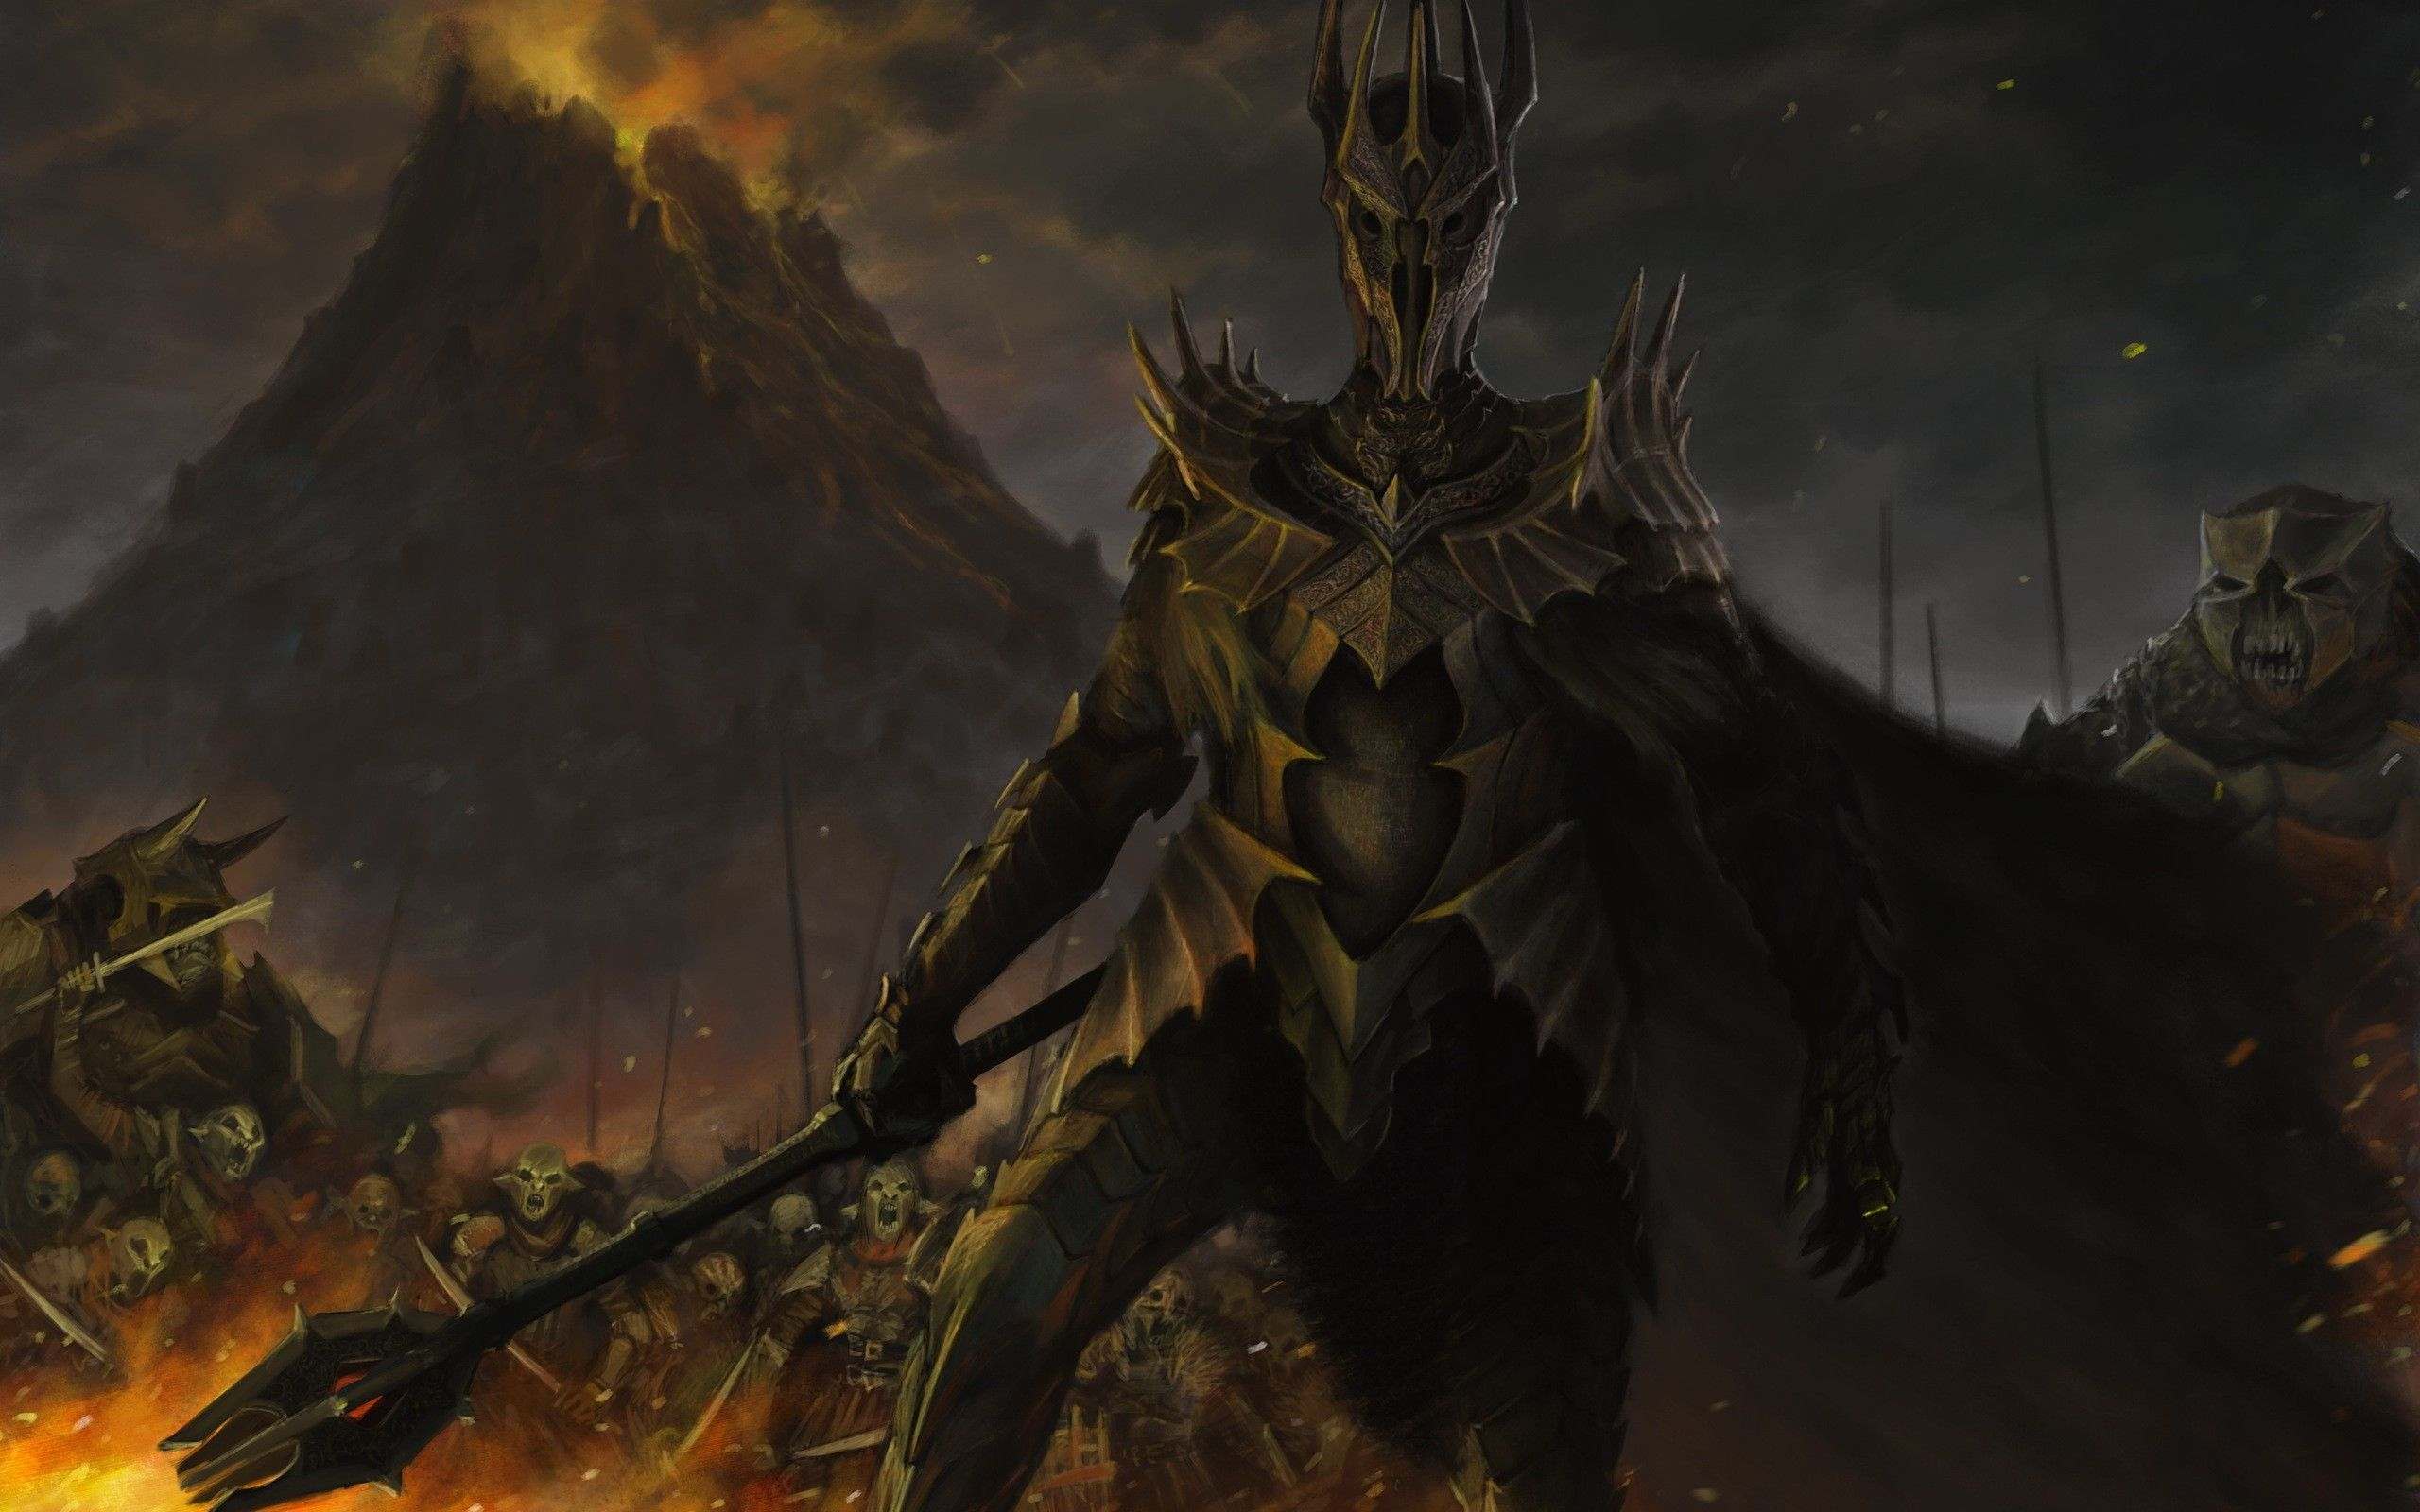 Sauron   The Lord of the Rings wallpaper 16532 2560x1600